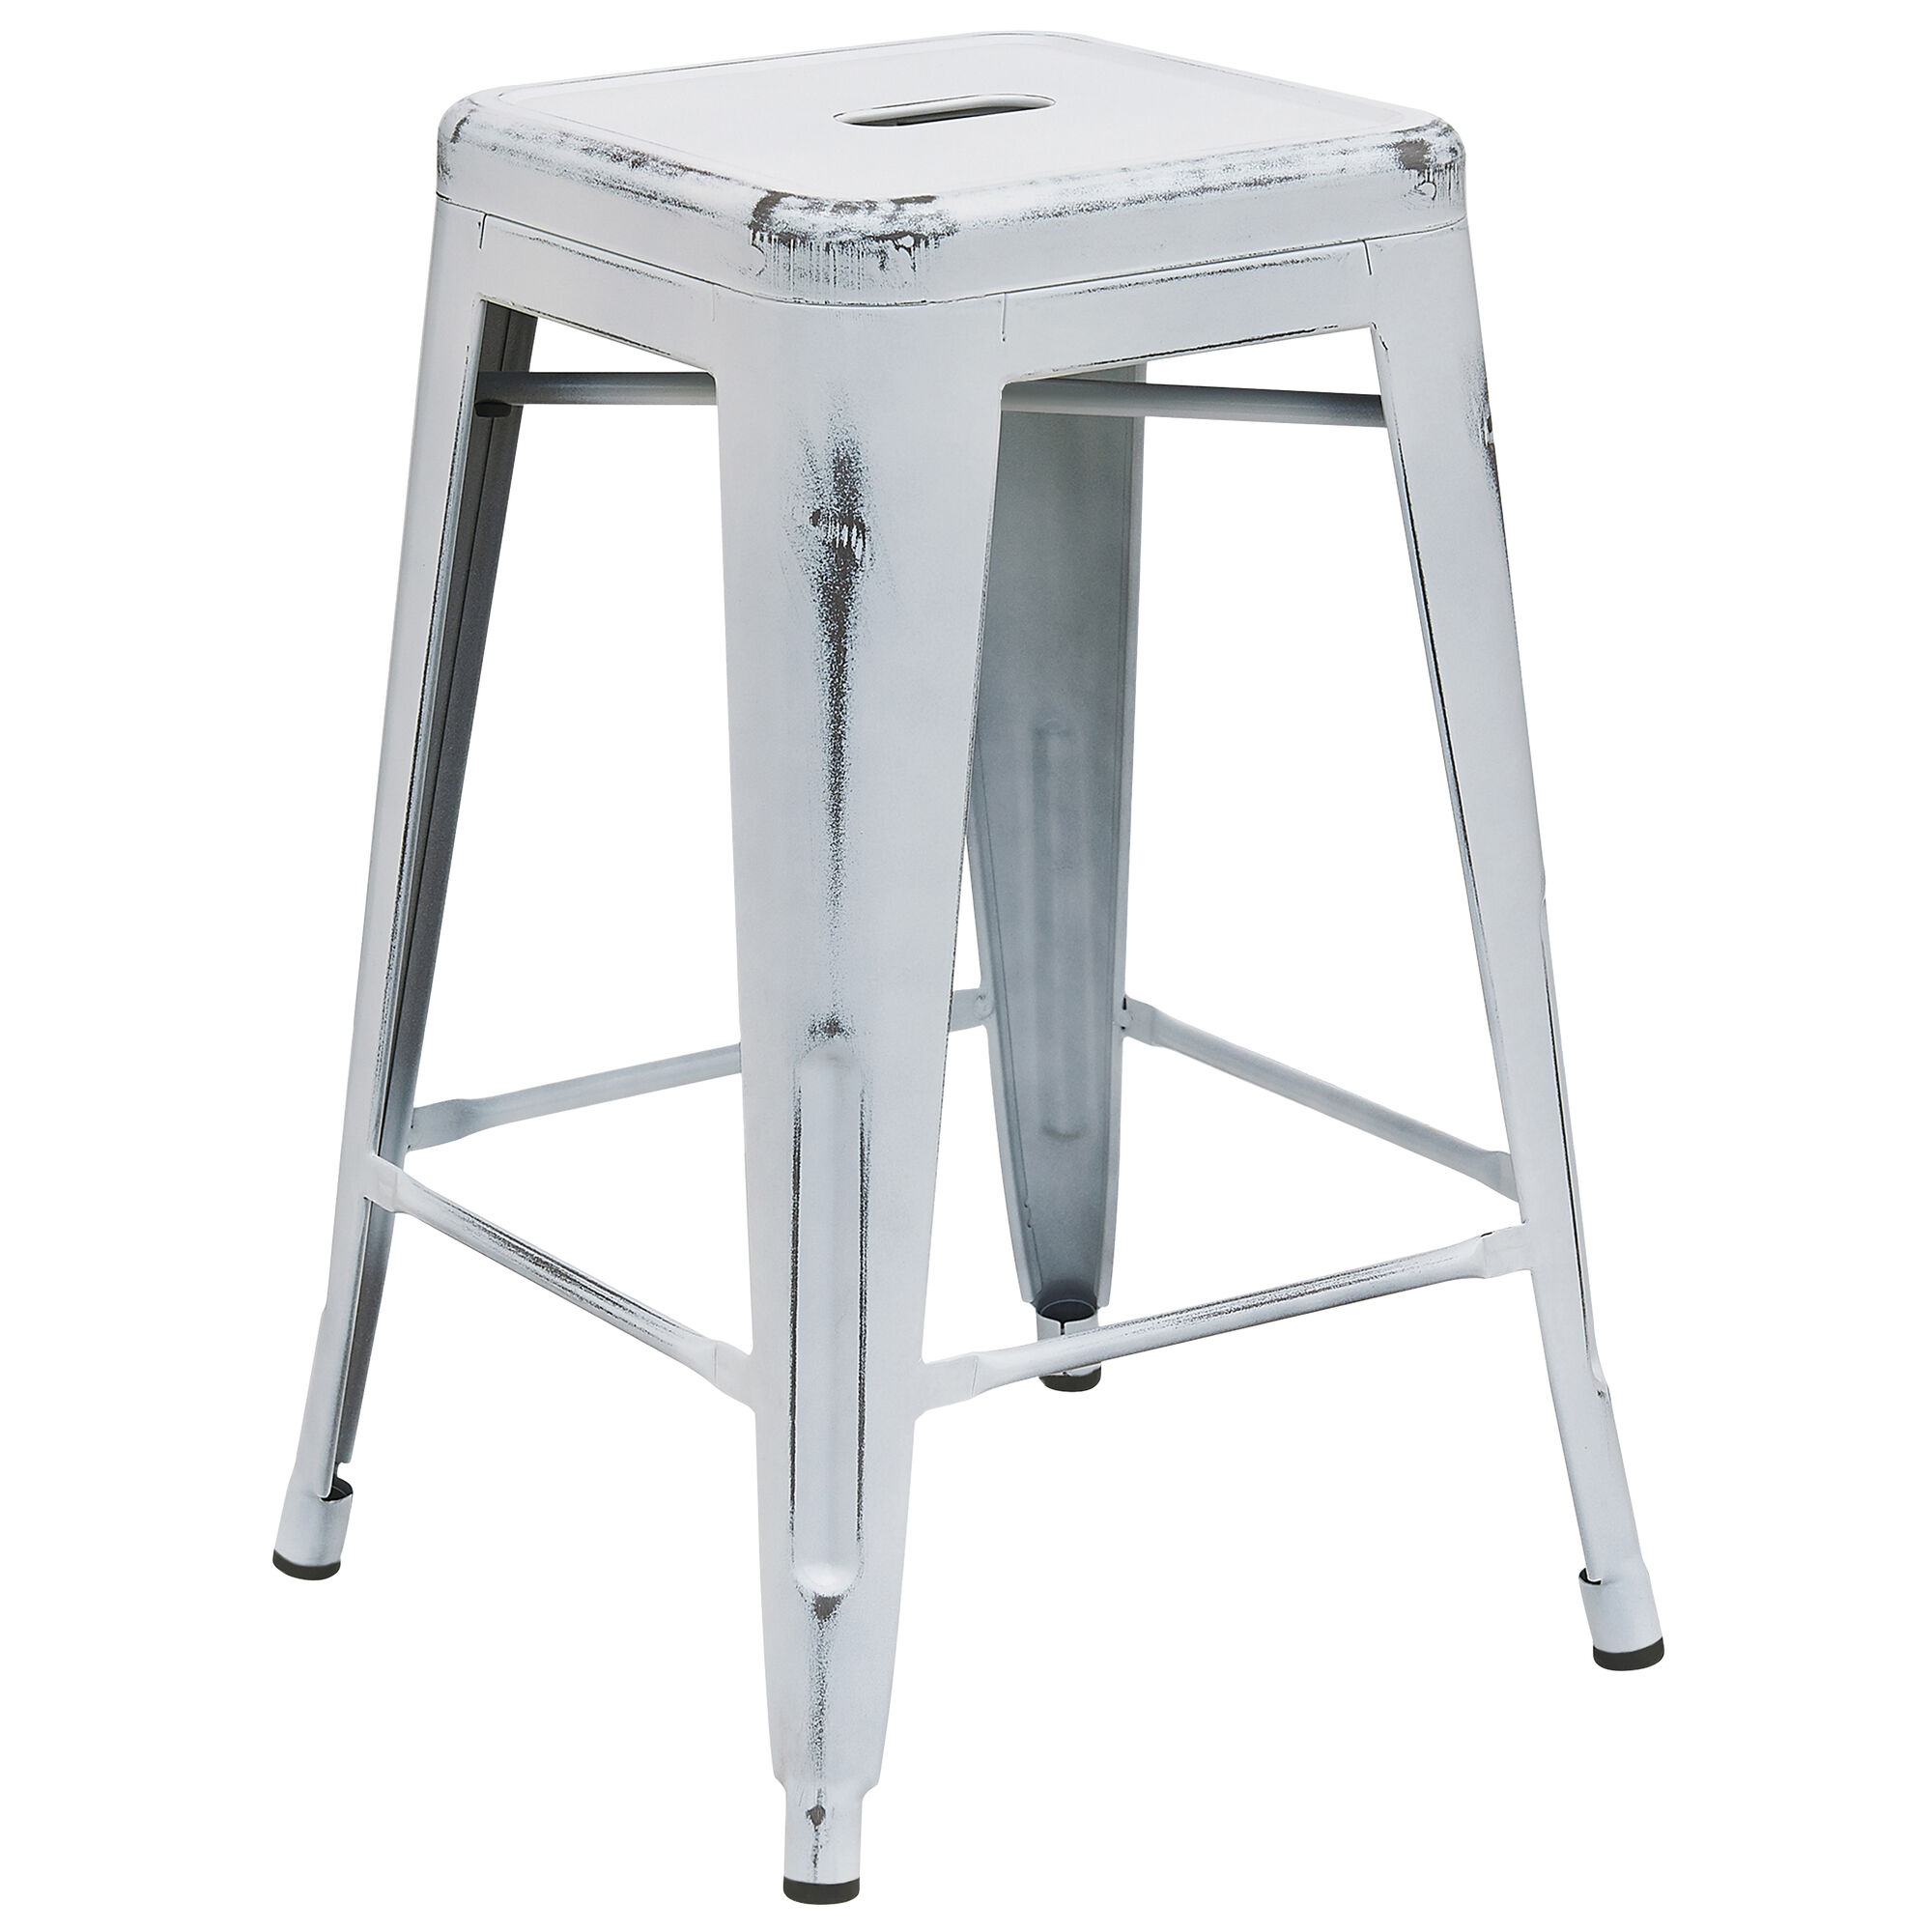 Superb Commercial Grade 24 High Backless Distressed White Metal Indoor Outdoor Counter Height Stool Pabps2019 Chair Design Images Pabps2019Com